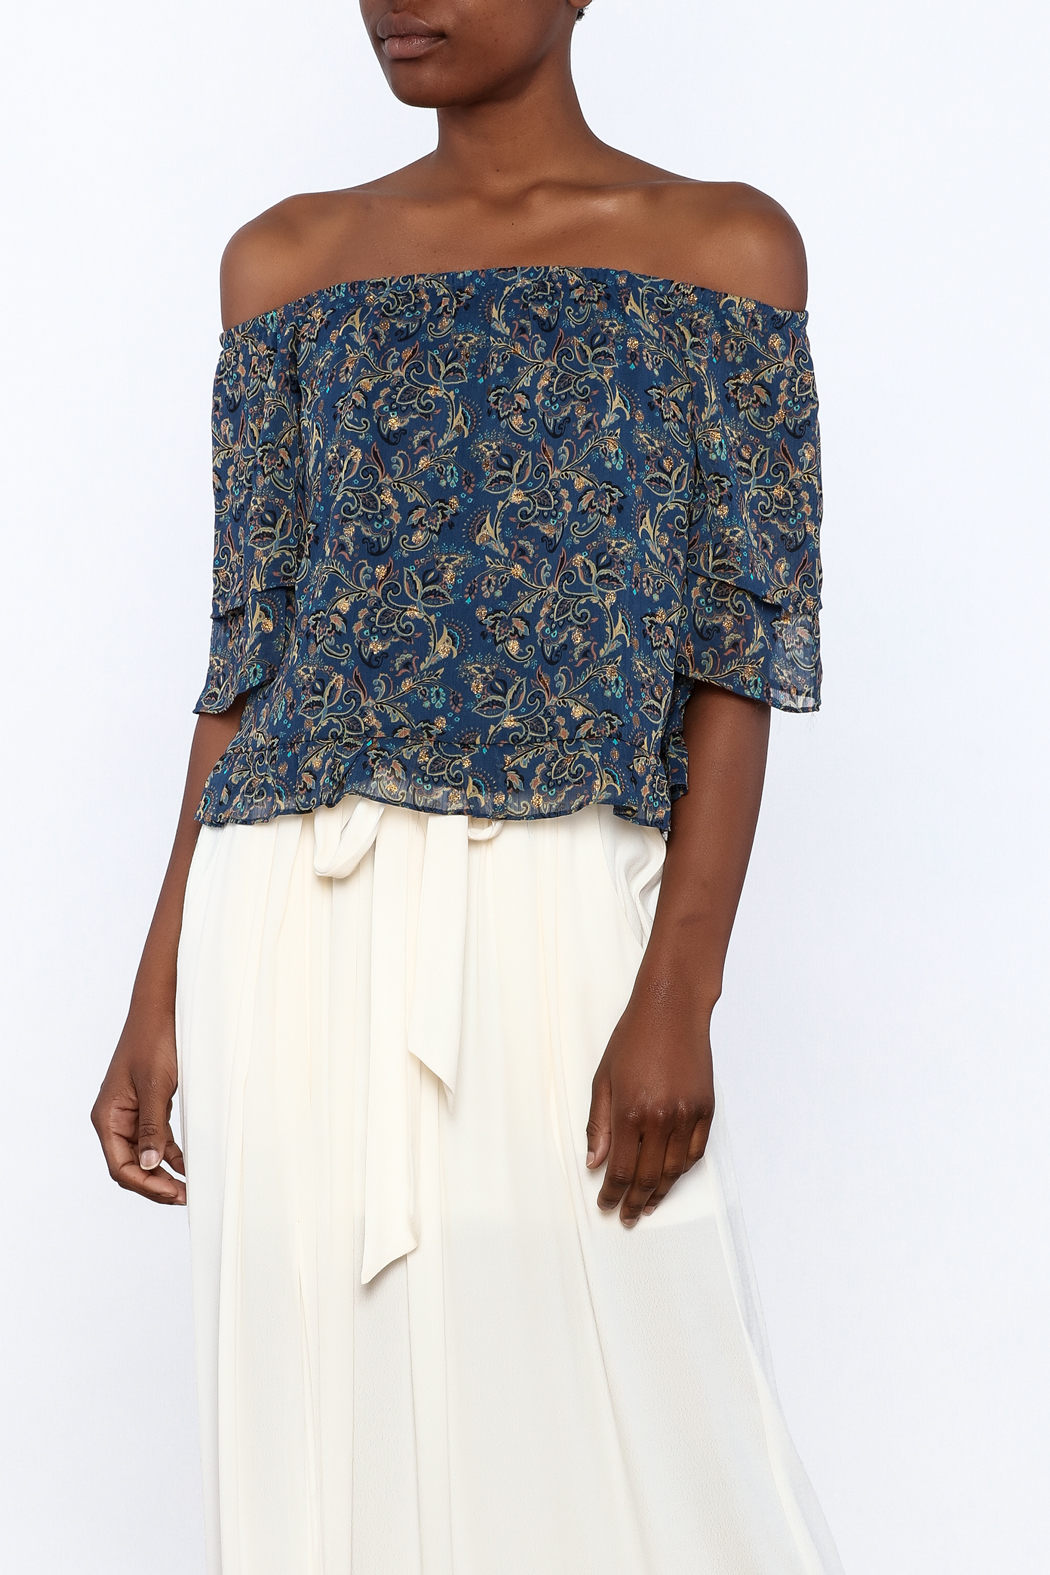 y&i clothing boutique Blue Boho Top - Main Image